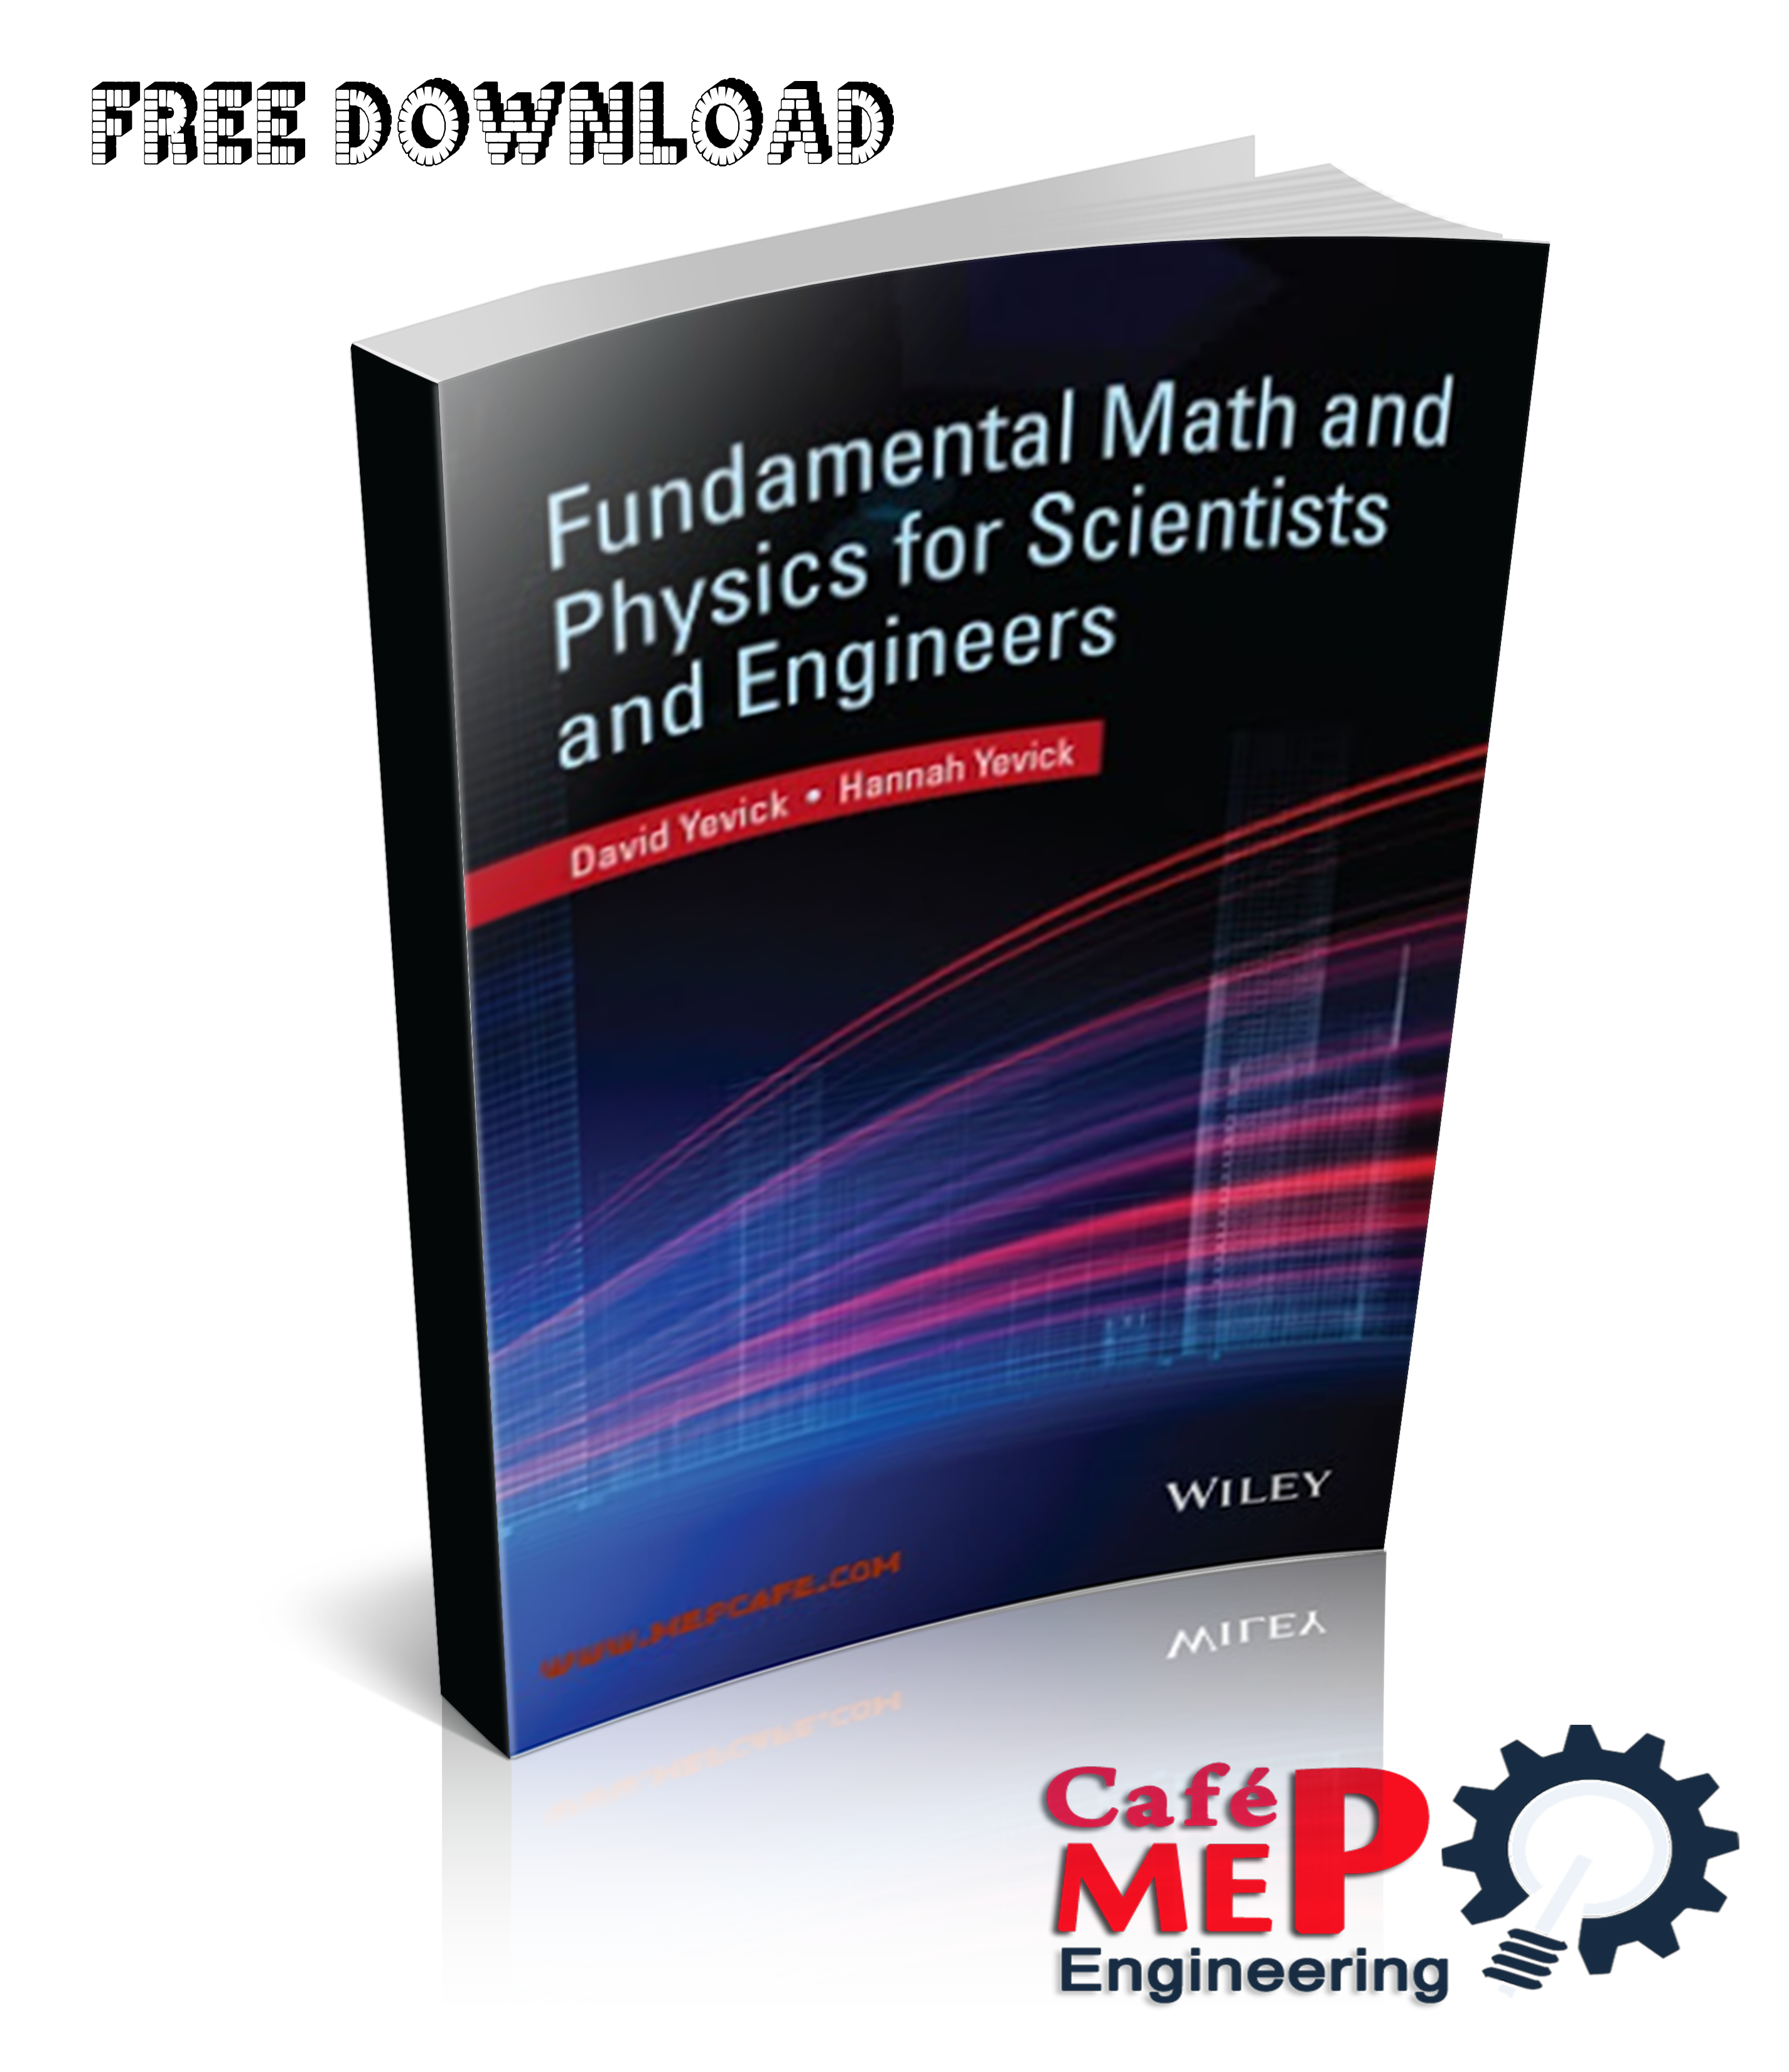 Fundamental Math And Physics For Scientists And Engineers Edited By David Yevick And Hannah Yevick In 2020 Fundamental Math Physics Math